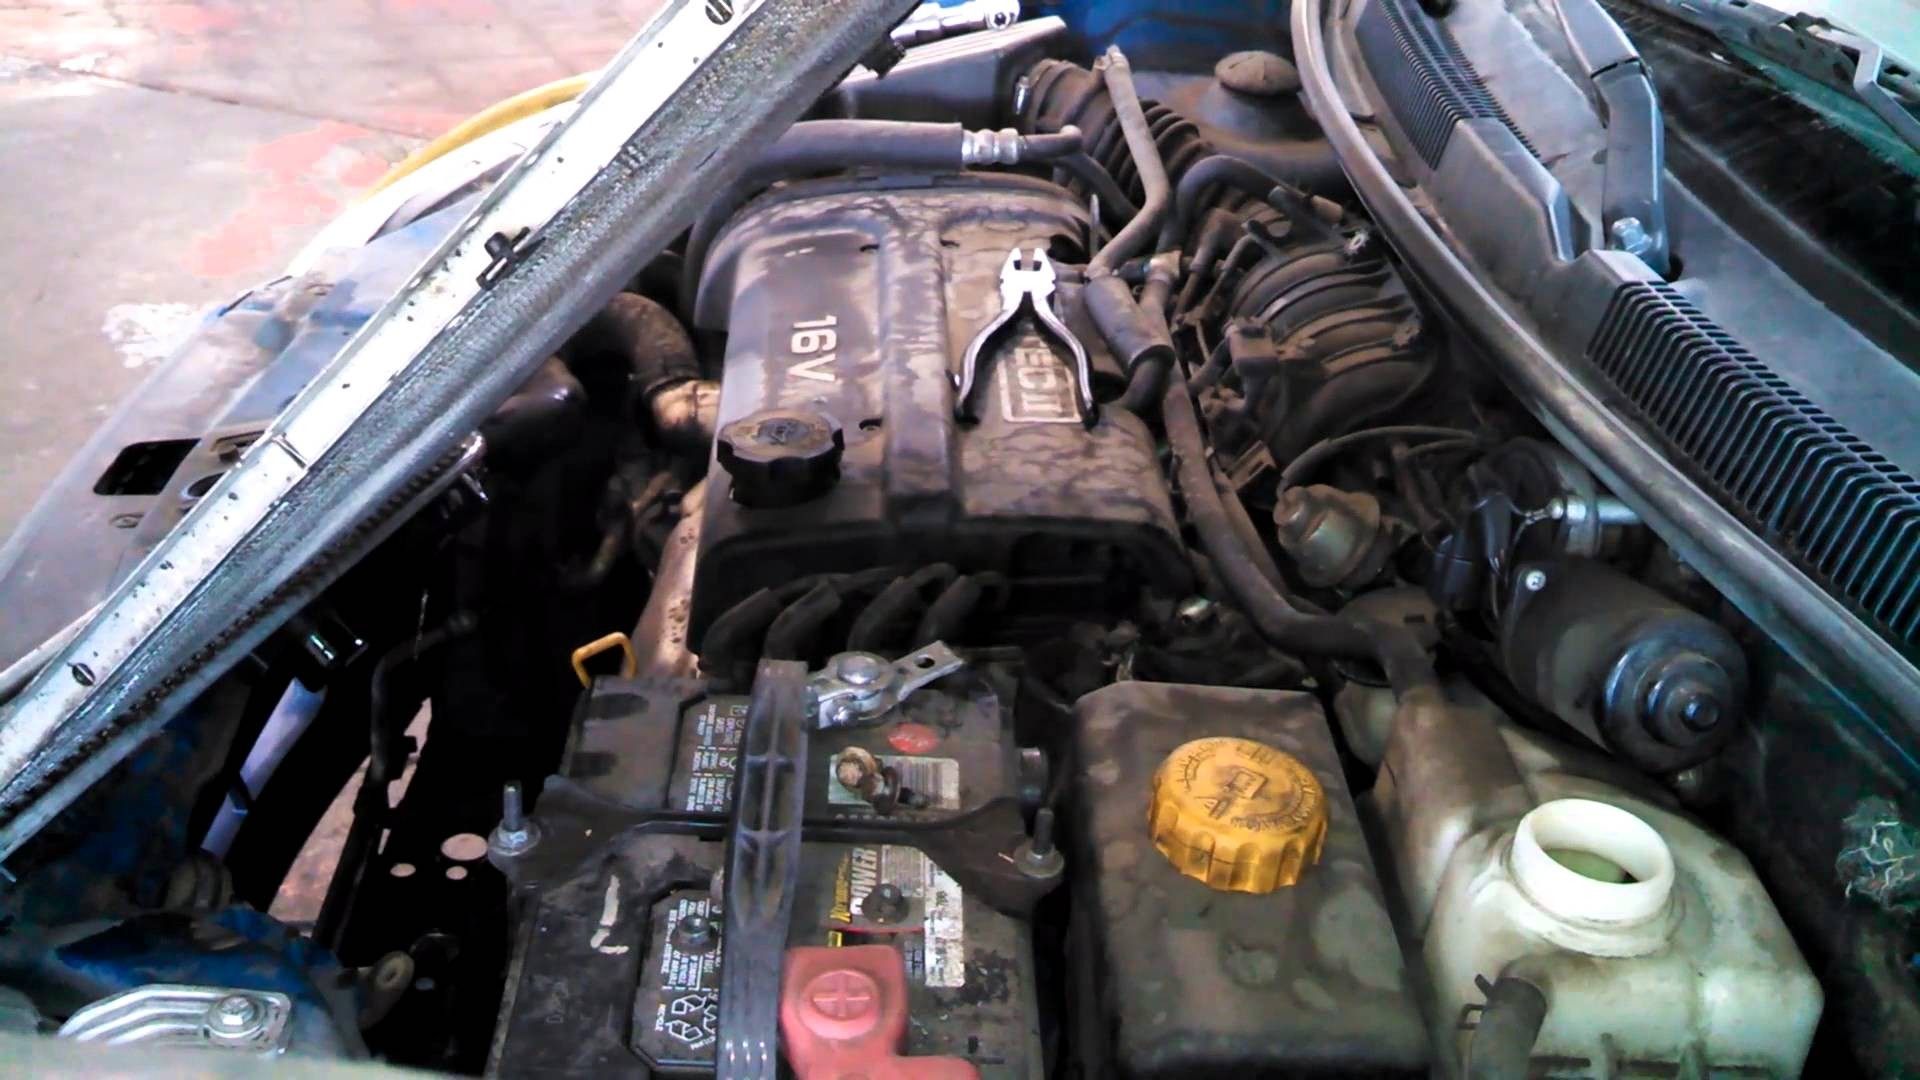 Chevrolet Aveo Engine Diagram Another Blog About Wiring 2009 Chevy Radiator Replacement Rh Detoxicrecenze Com 2006